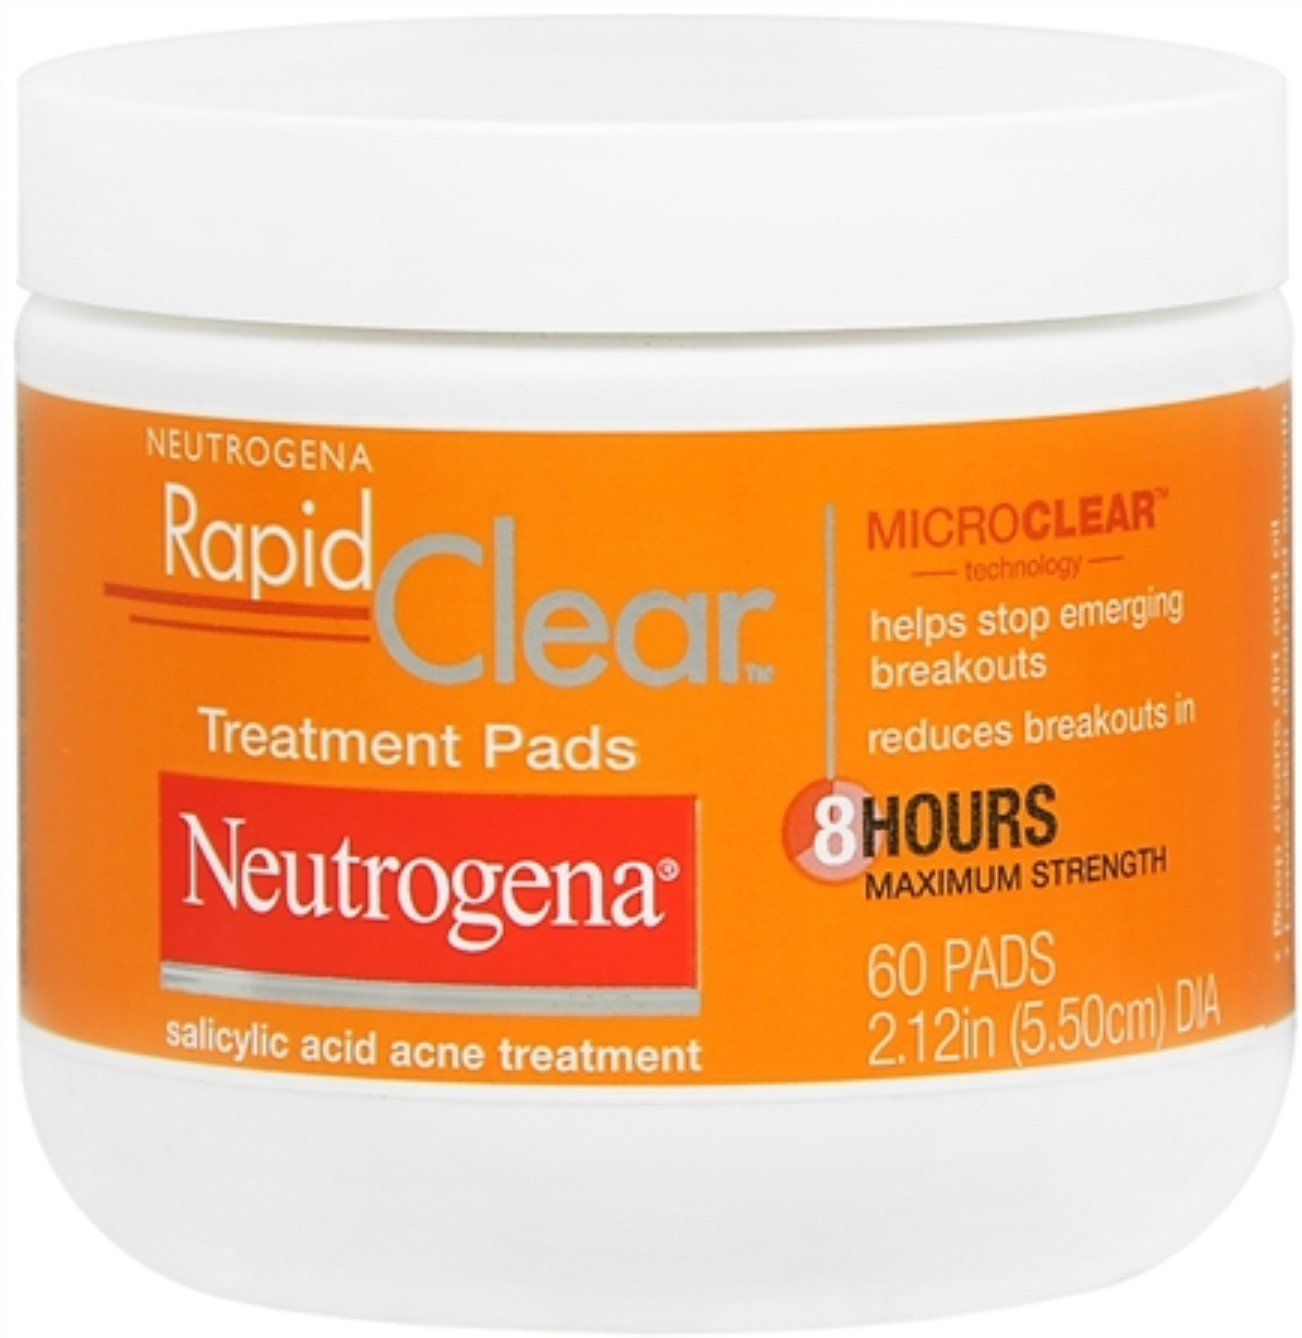 Neutrogena Rapid Clear Acne Face Pads with Salicylic Acid Acne Treatment Medicine to Fight Face Breakouts, Oil Free Pads with Maximum Strength Salicylic Acid Acne Medicine, 60 ct (Pack of 2)